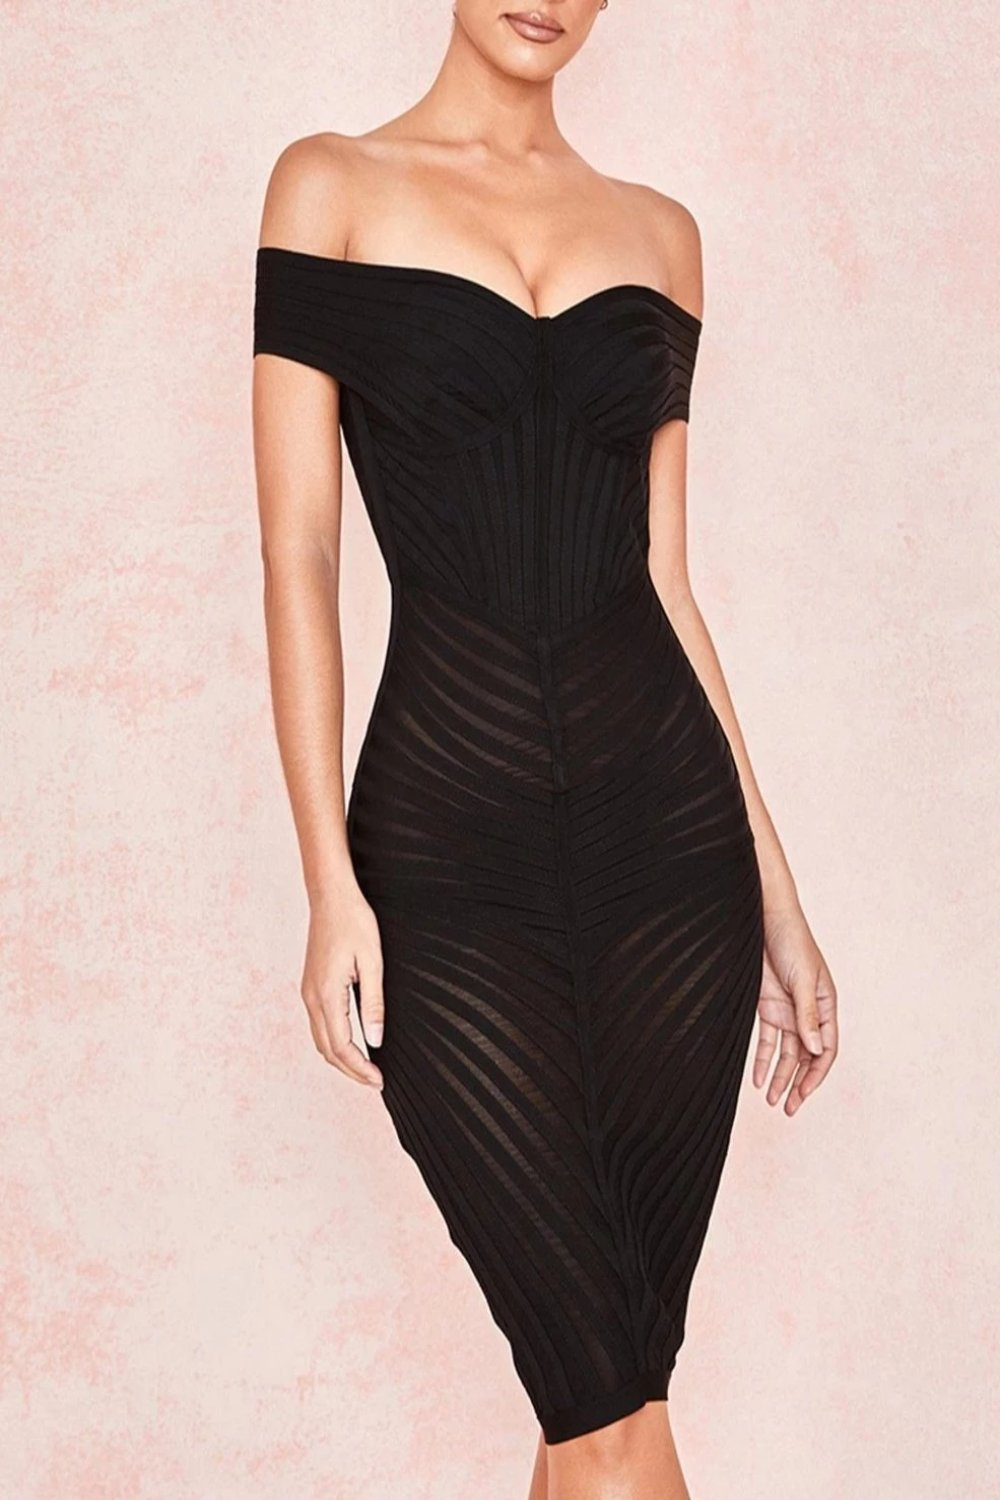 Black Off Shoulder Mesh + Bandage Dress